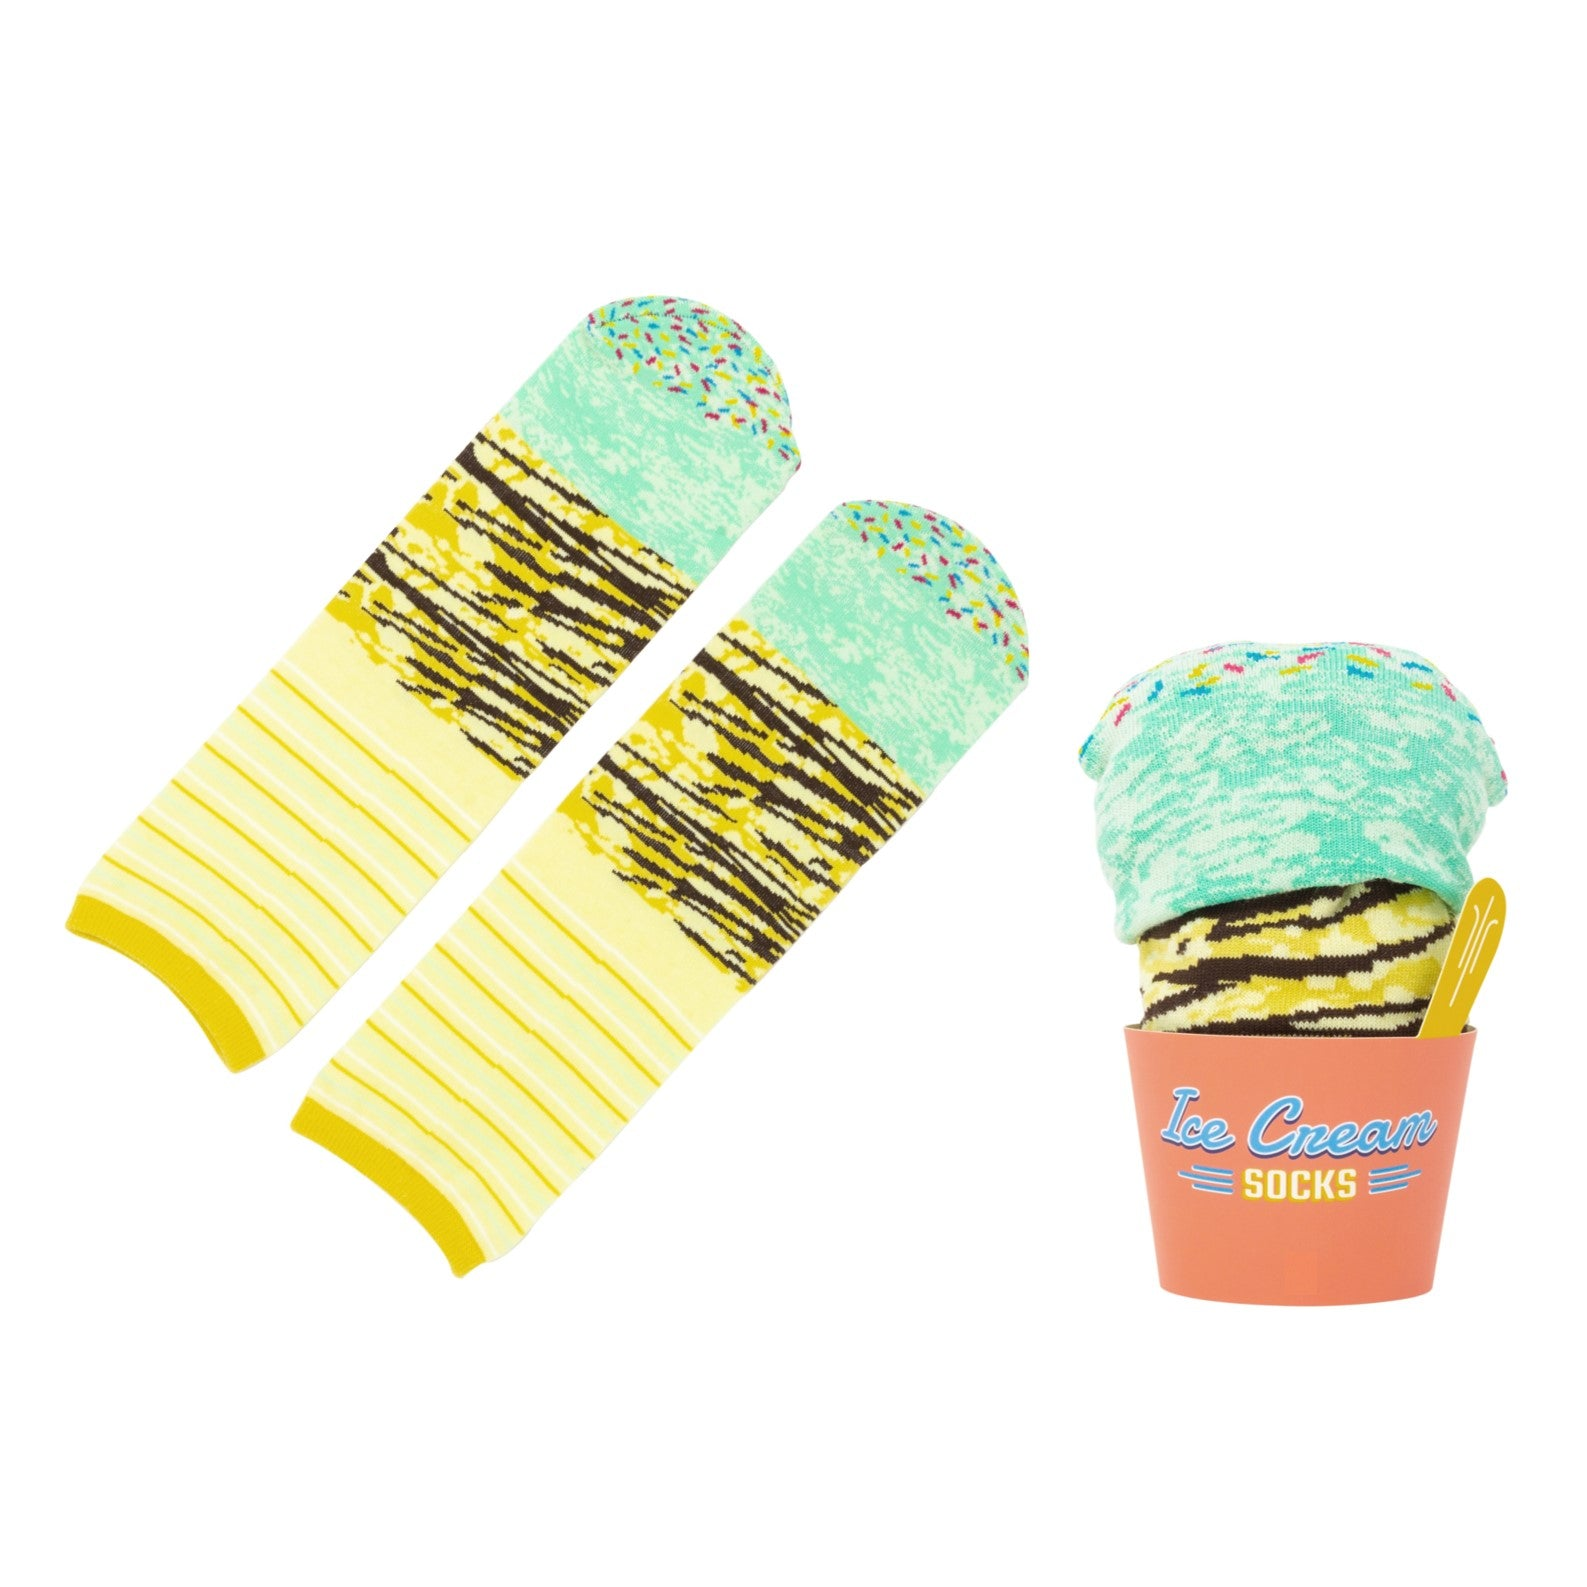 Mint Chocolate Ice Cream Socks